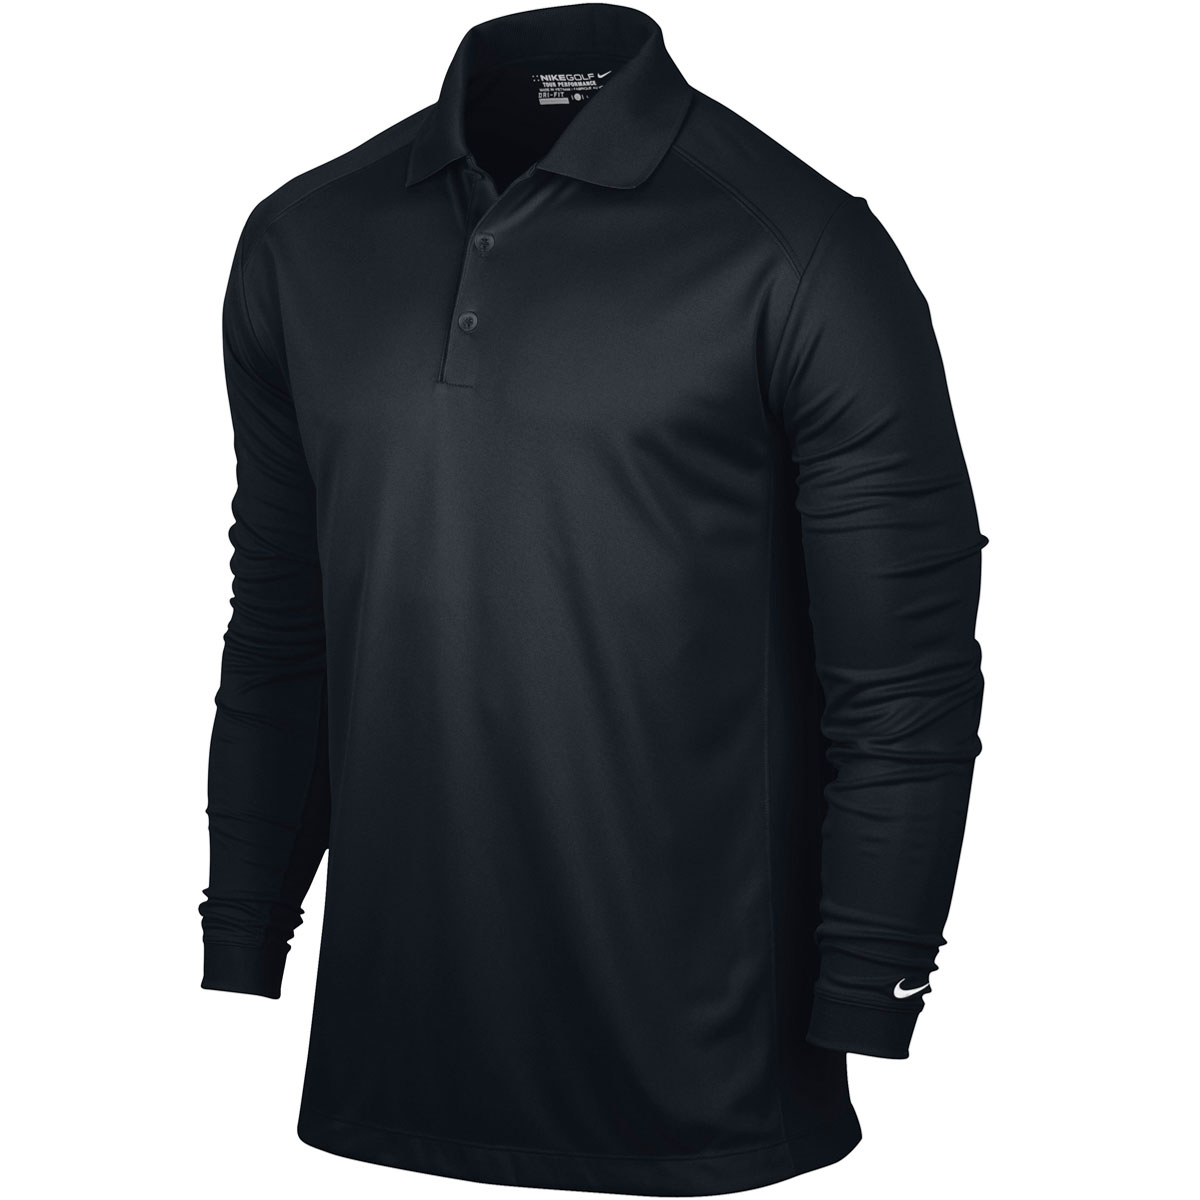 Nike Golf 2015 Mens Dri Fit Victory Long Sleeve Polo Shirt